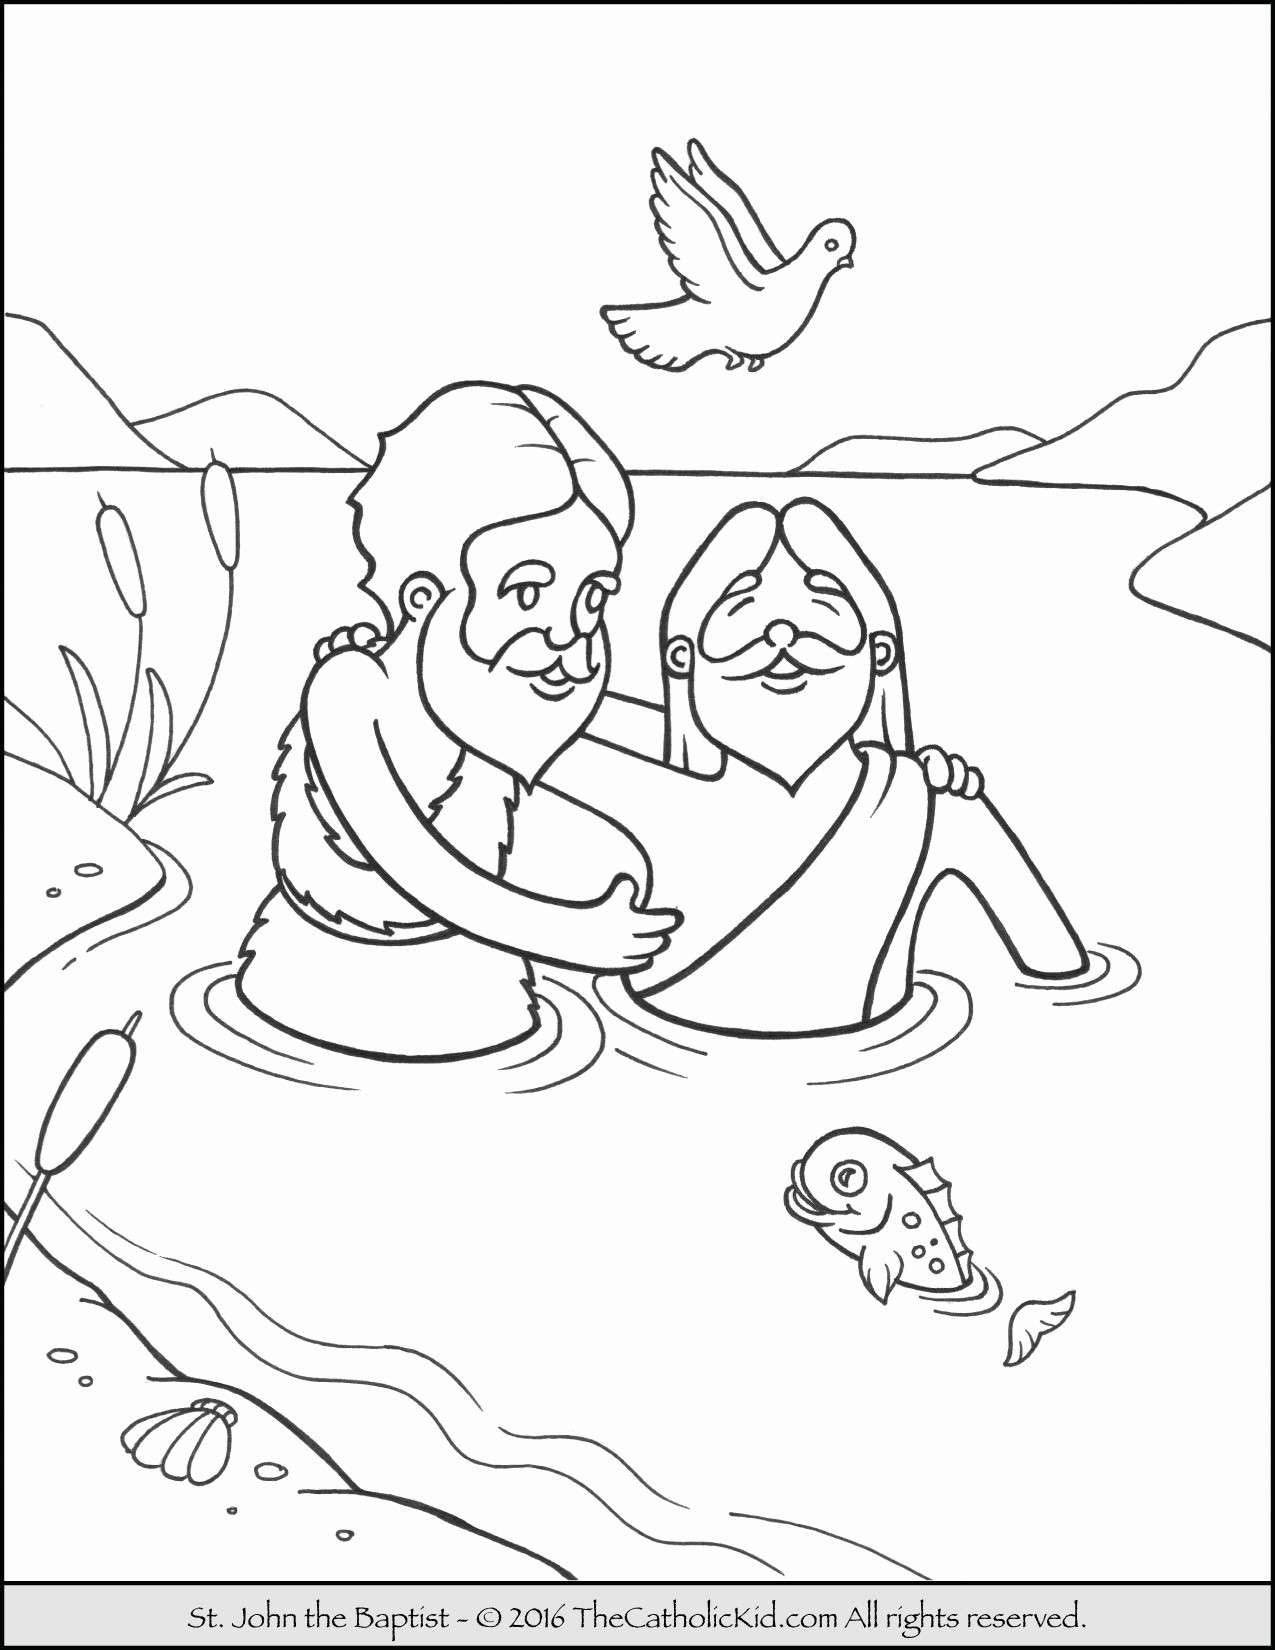 rainbow rock coloring pages Download-Rainbow Rocks Coloring Pages Equestria Girls Rainbow Rocks Coloring Pages Free 4-q